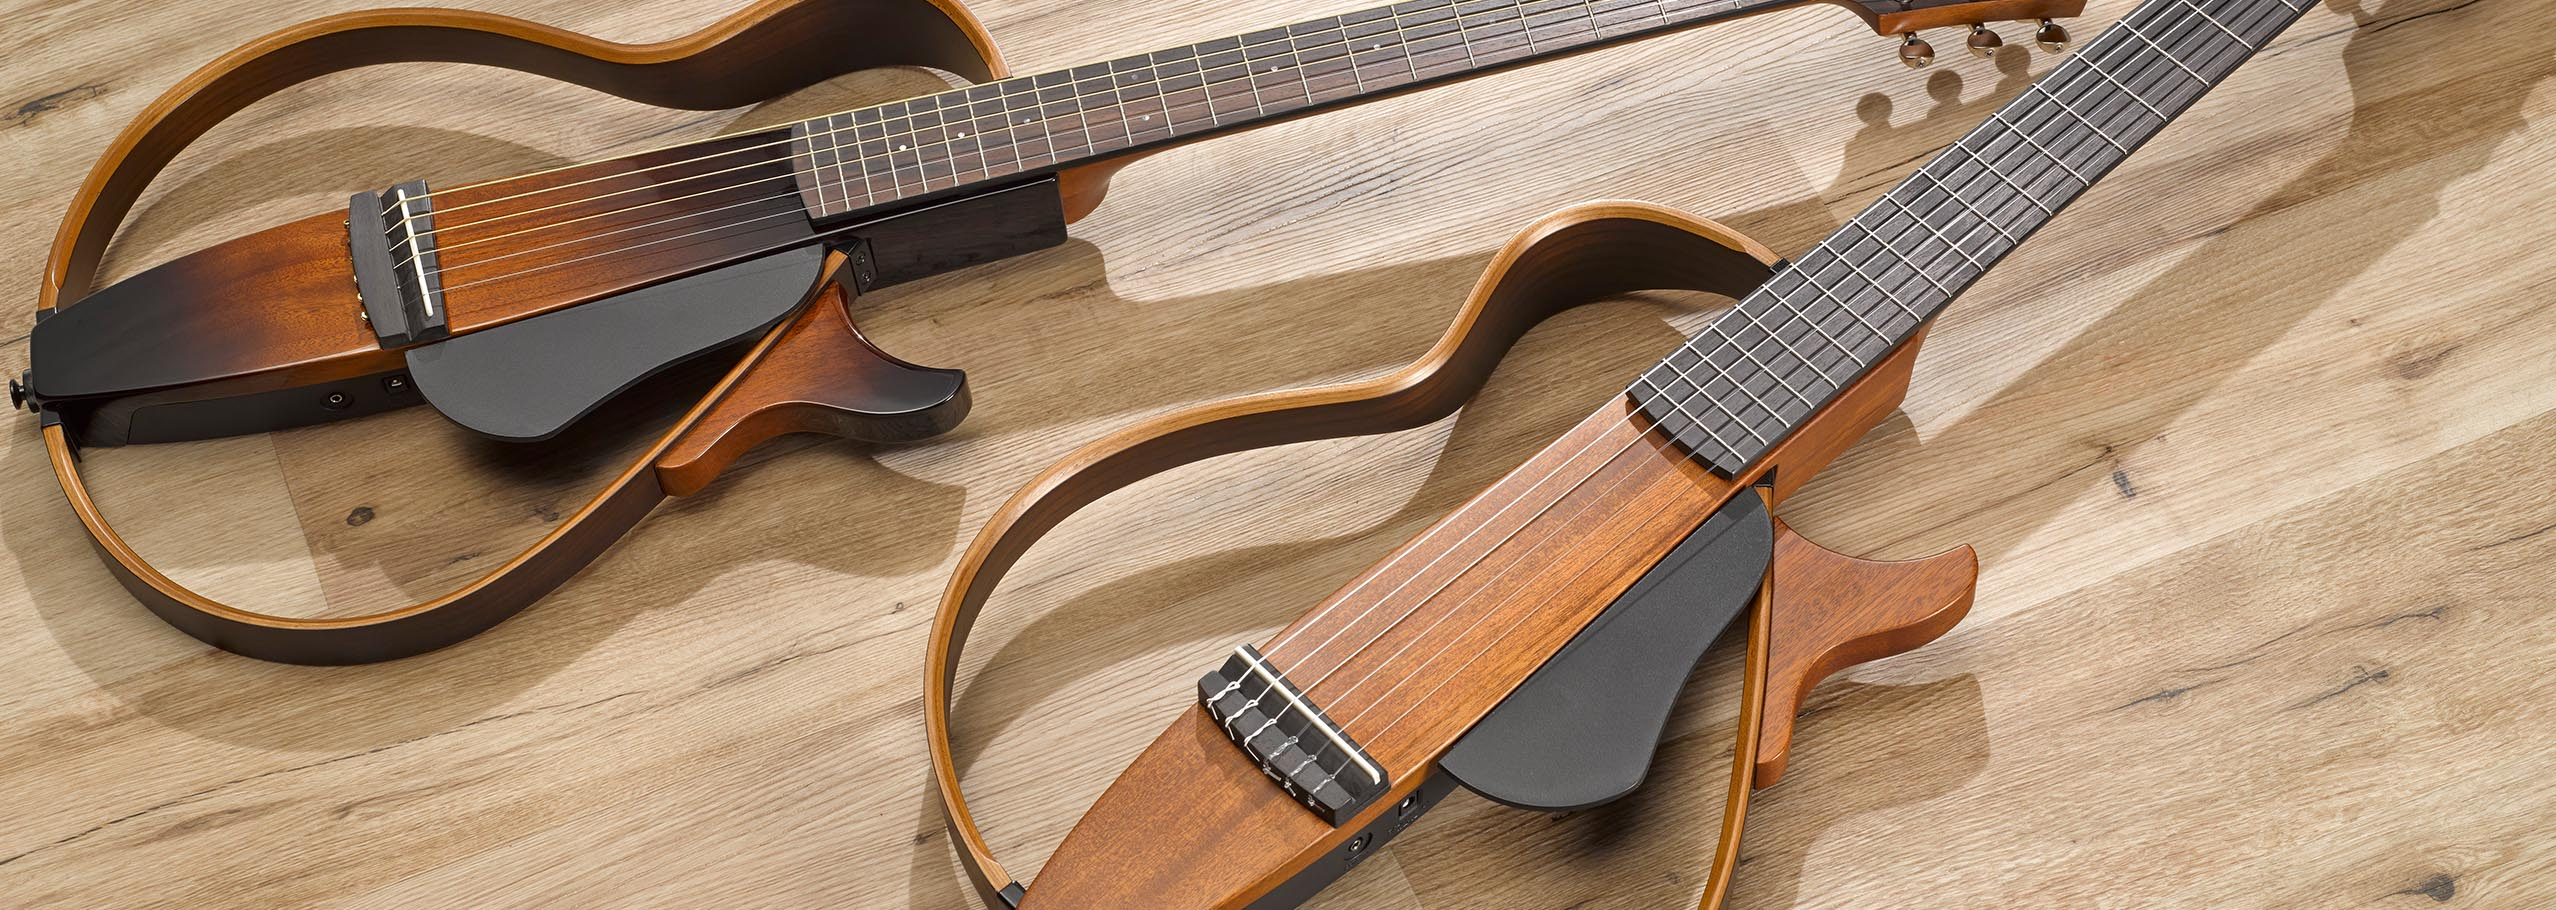 7 Best Travel Guitars Must Read Reviews For December 2019